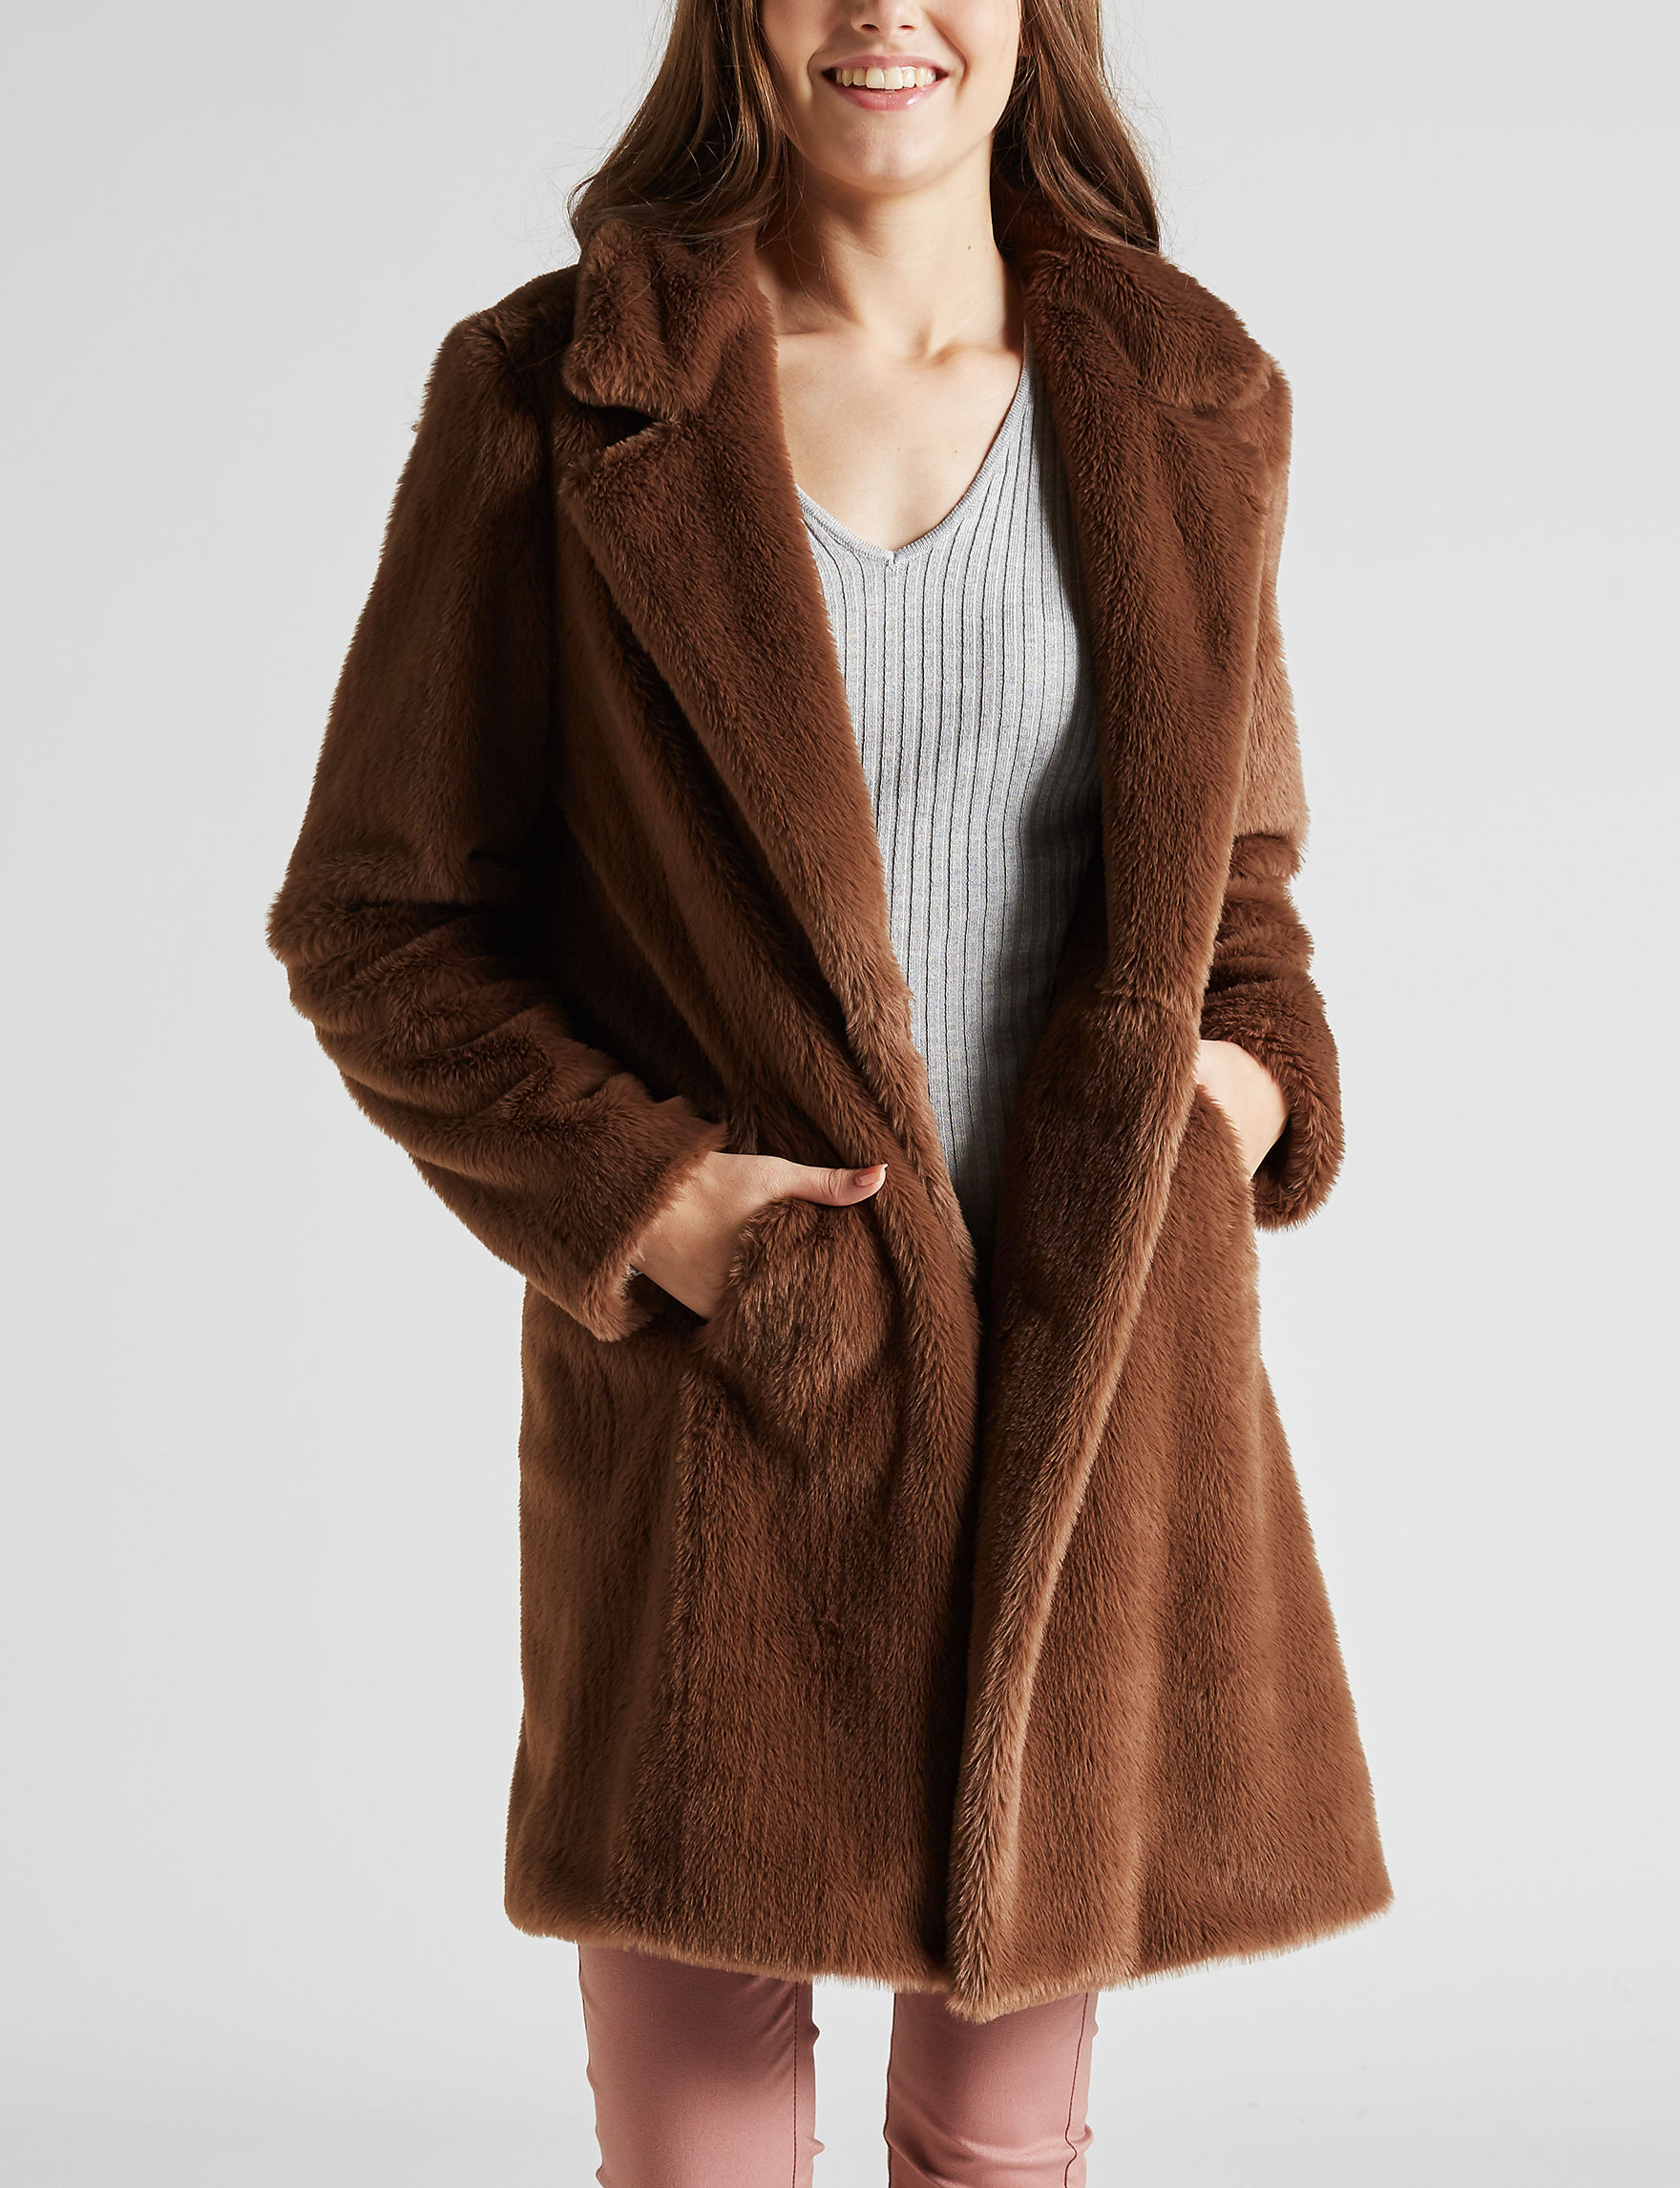 Sebby Collection Brown Peacoats & Overcoats